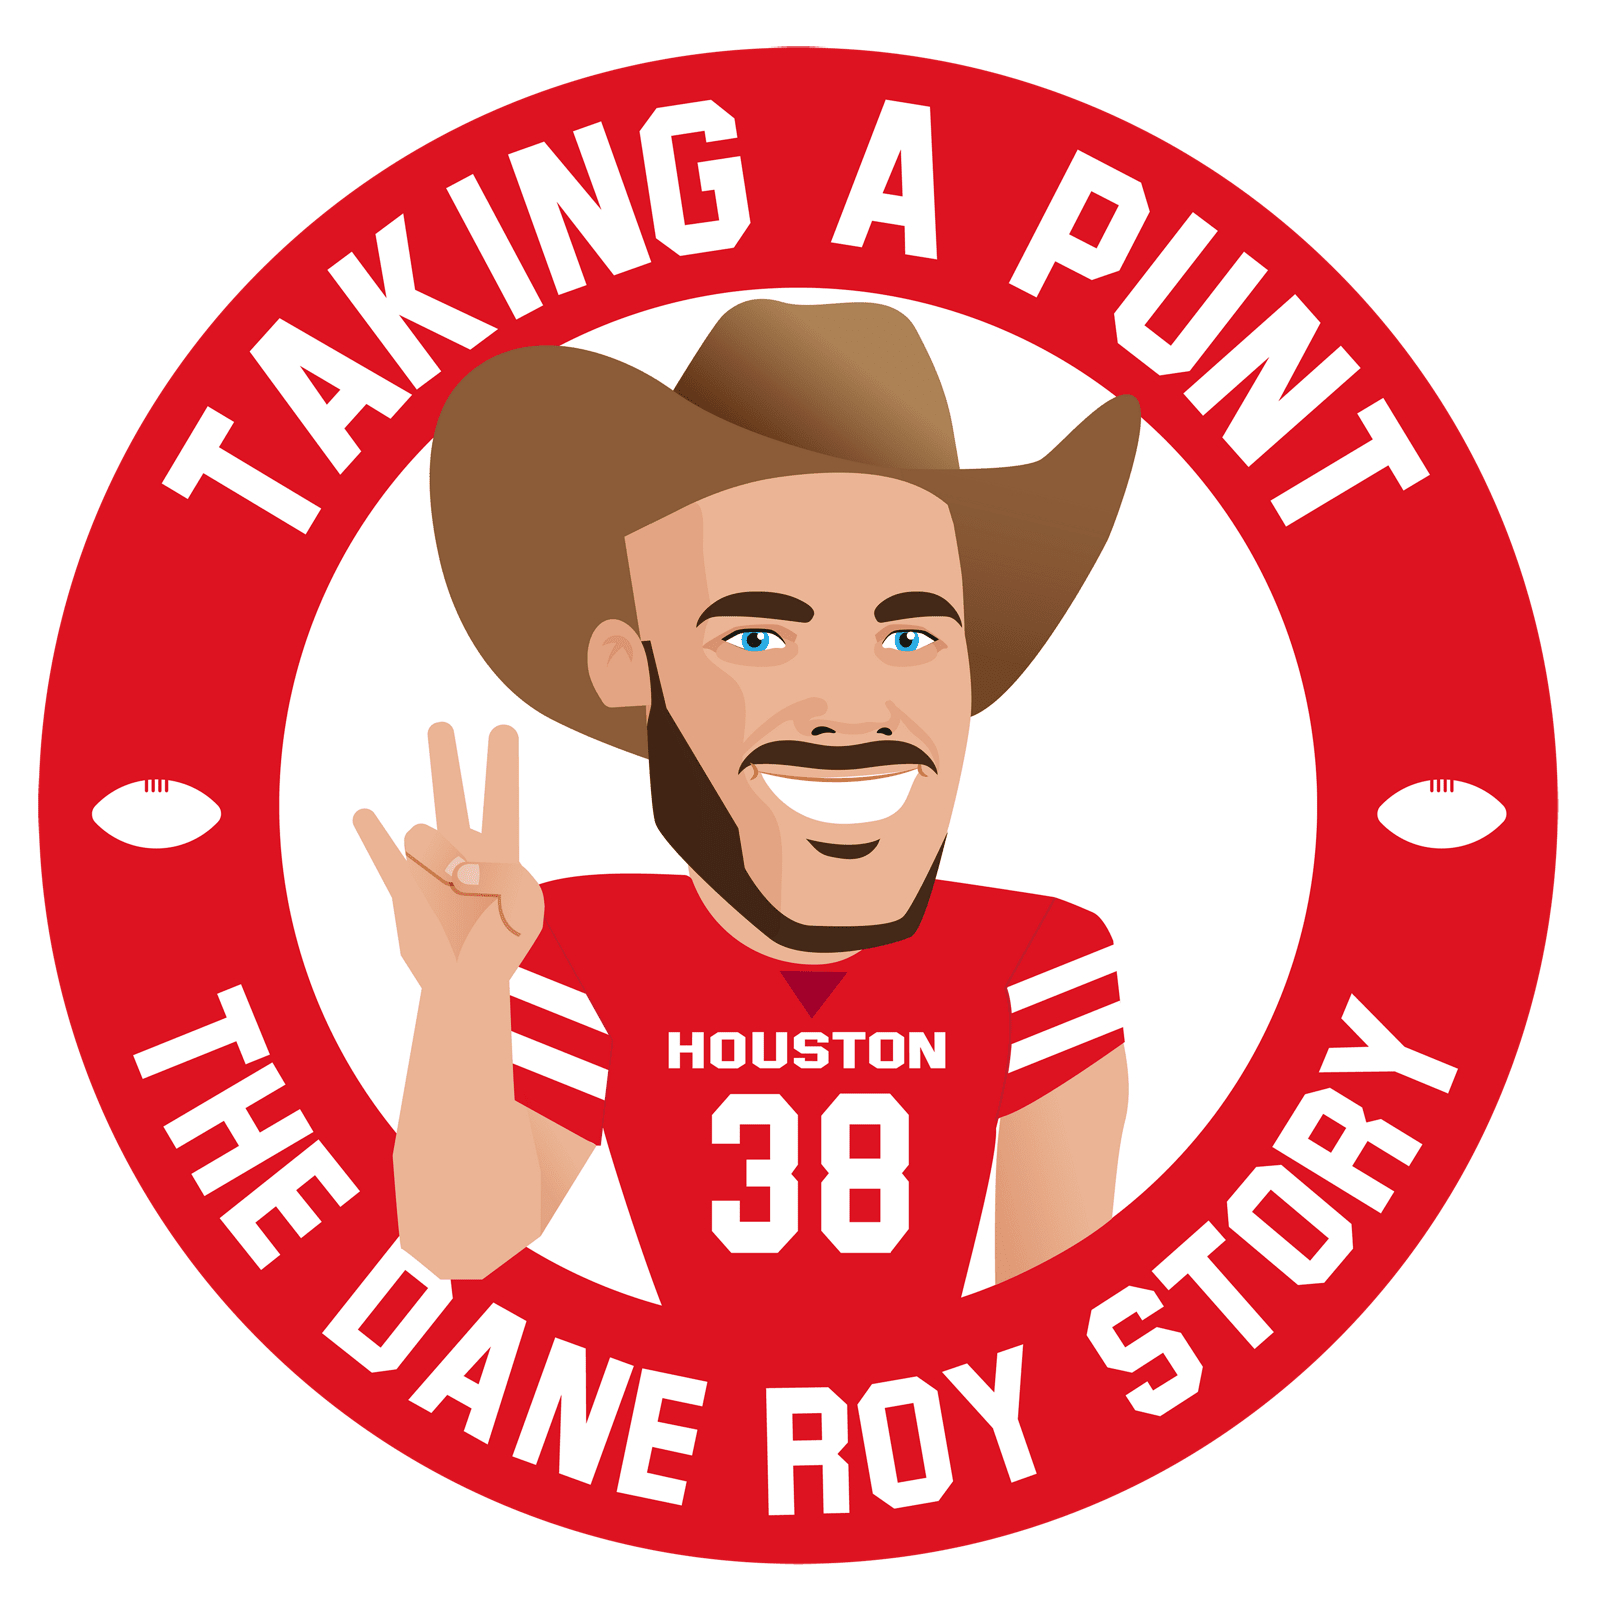 Show artwork for Taking A Punt: The Dane Roy Story